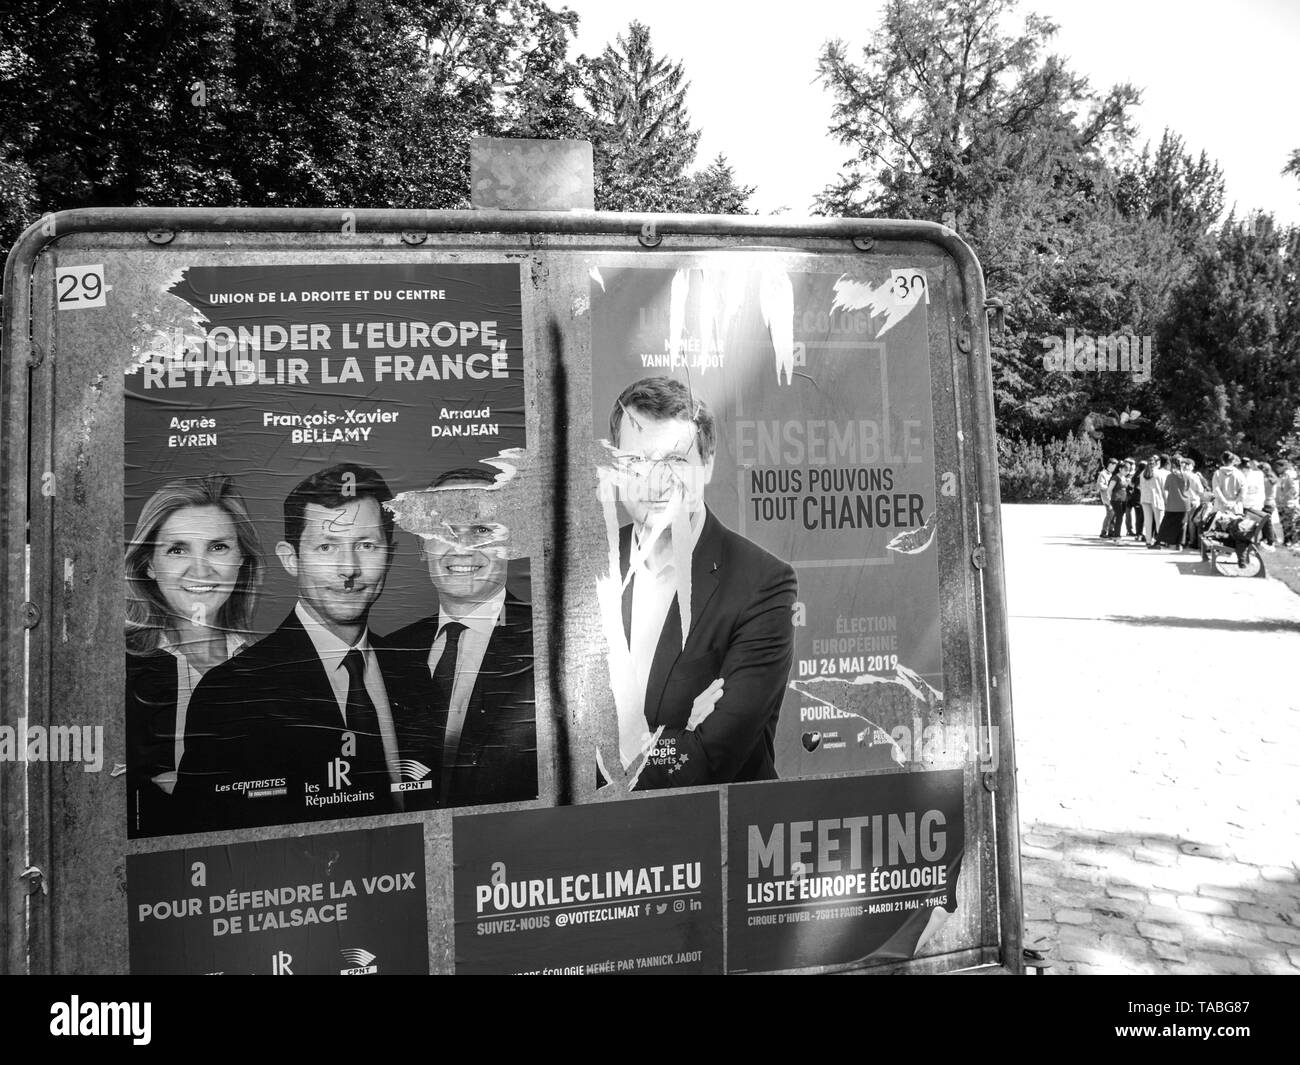 Strasbourg, France - May 23, 2019: Posters in green sunny park for 2019 European Parliament election featuring French politiciains from Les Republicains and Ecologist party - young kids in background - Stock Image